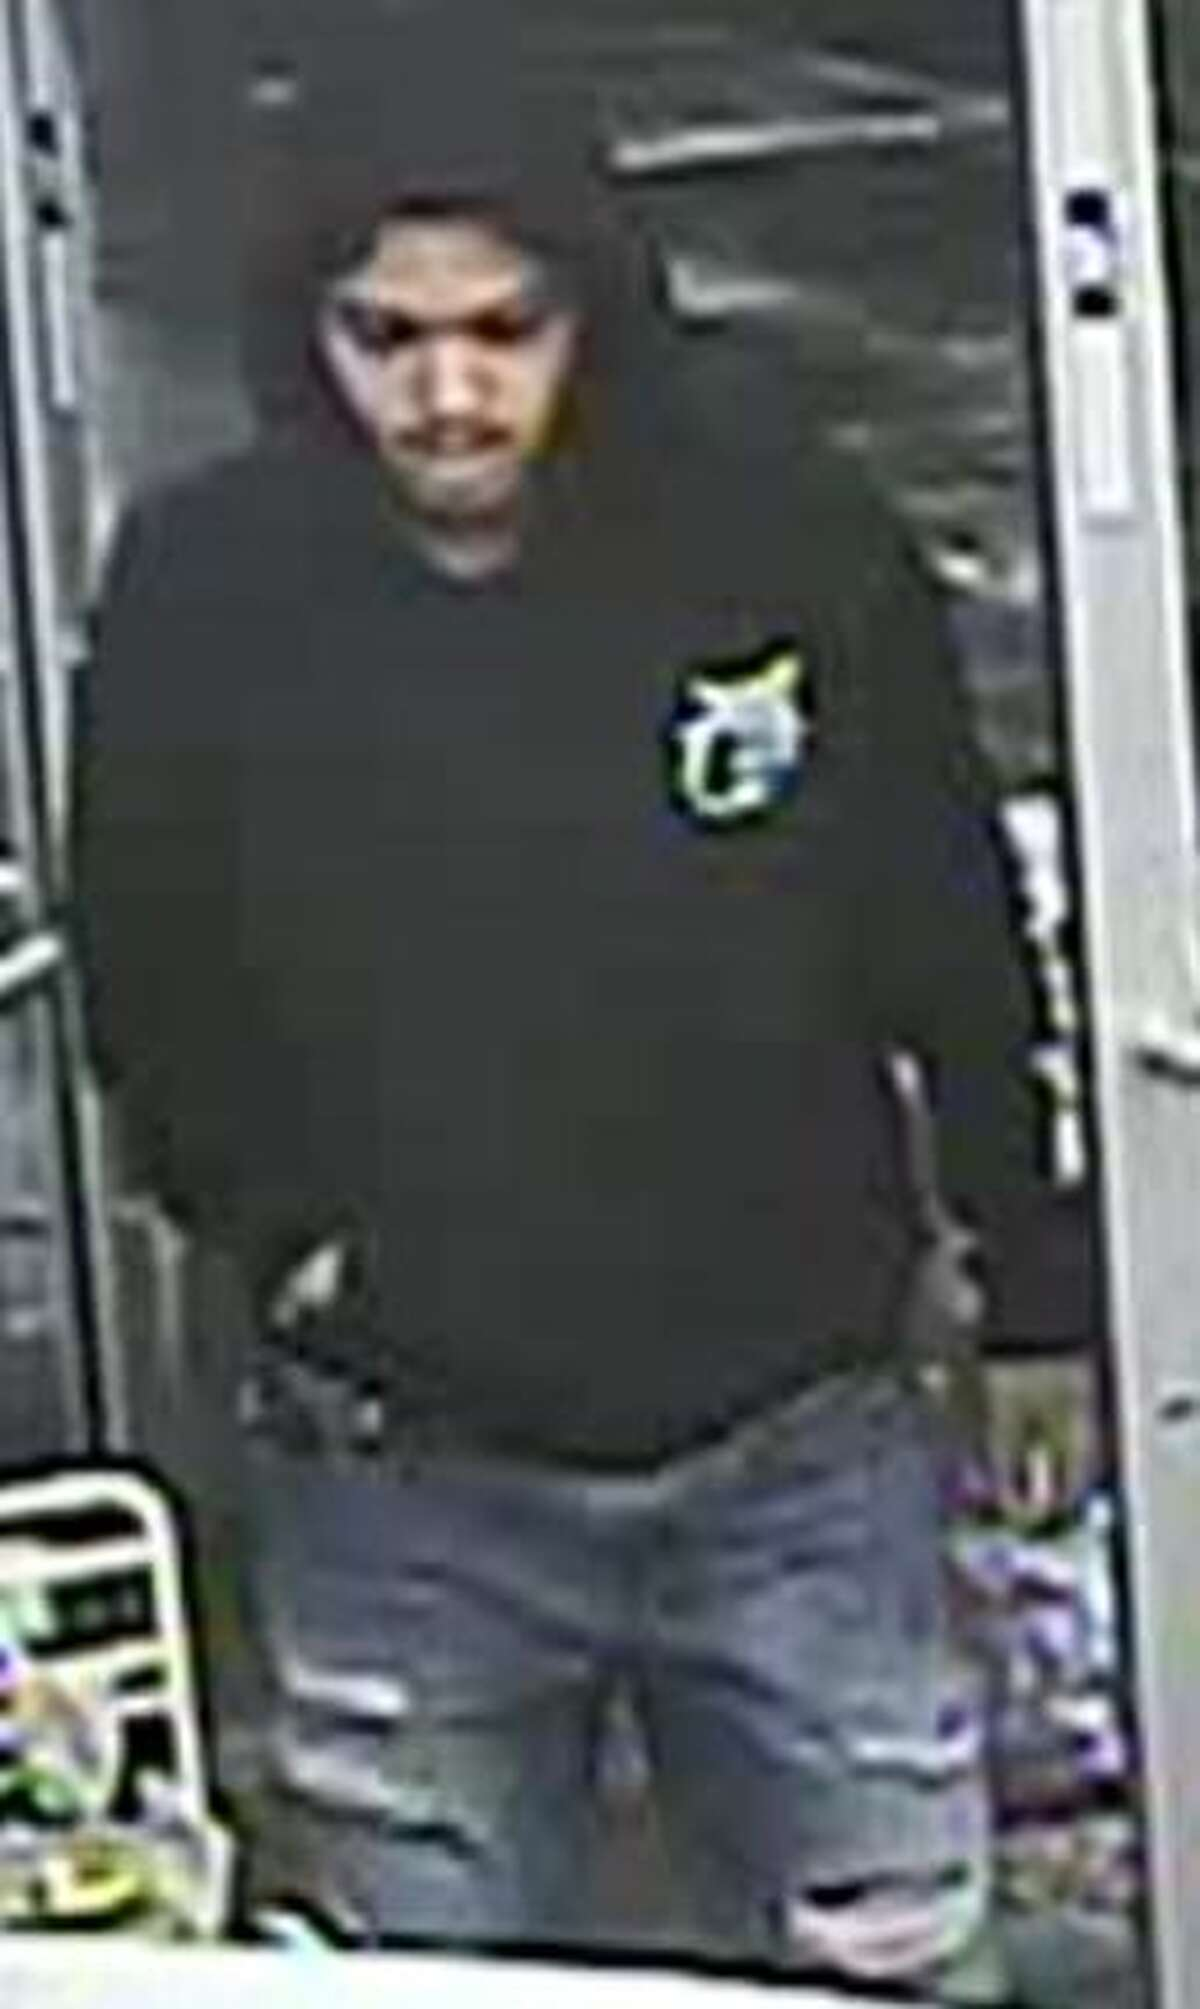 The suspect entered the gas station in the 6000 block of Interstate 35, displayed a weapon and demanded money. He then fled in an unknown direction.